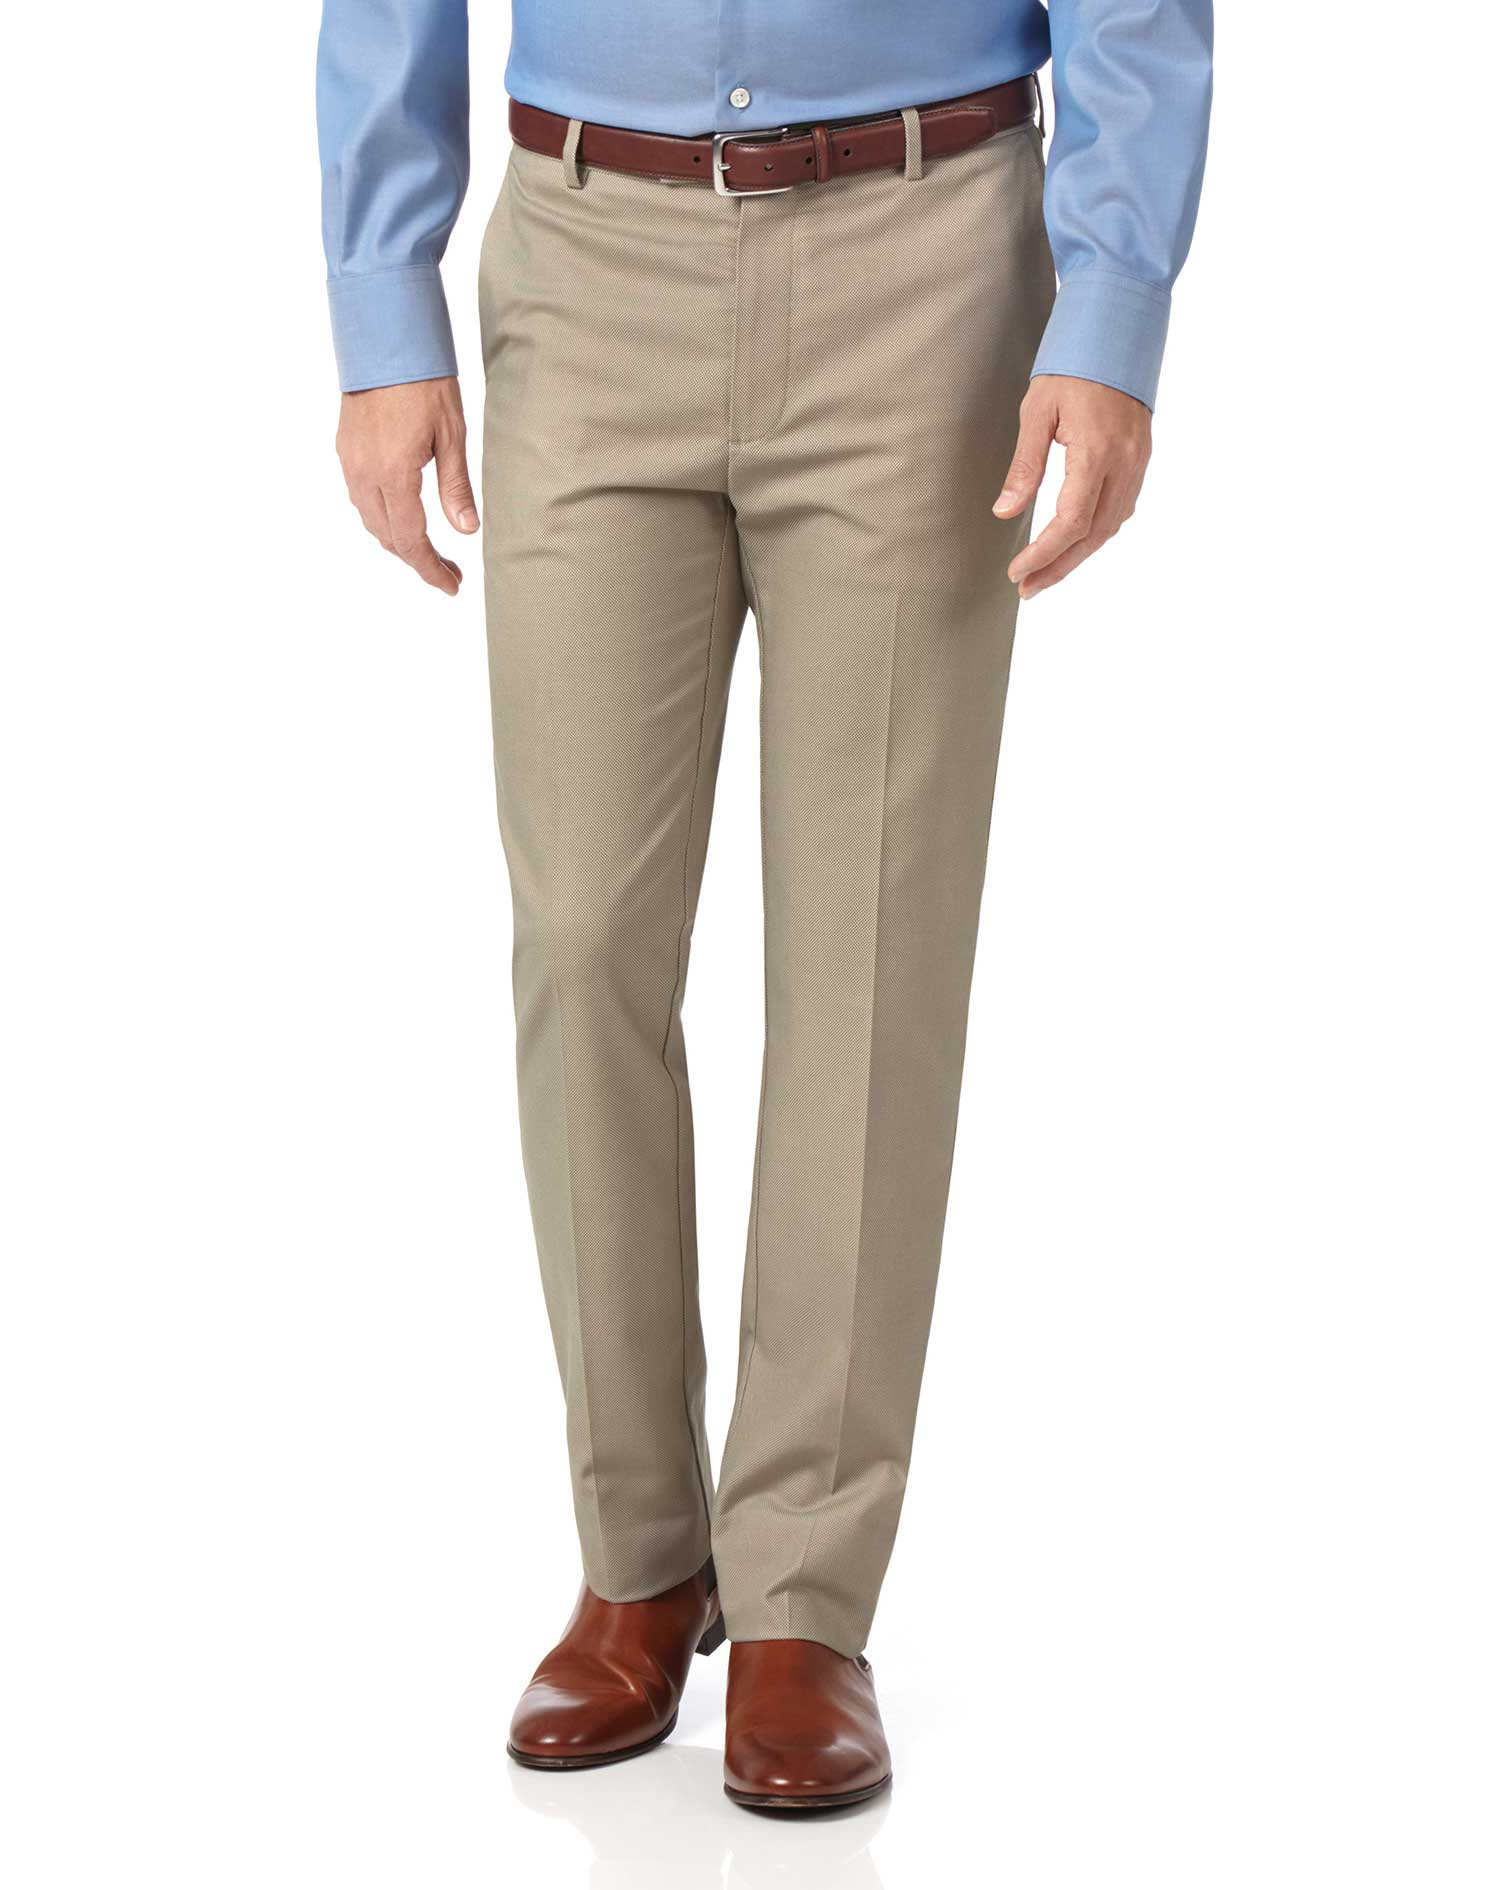 Stone Slim Fit Stretch Non-Iron Trousers Size W36 L30 by Charles Tyrwhitt